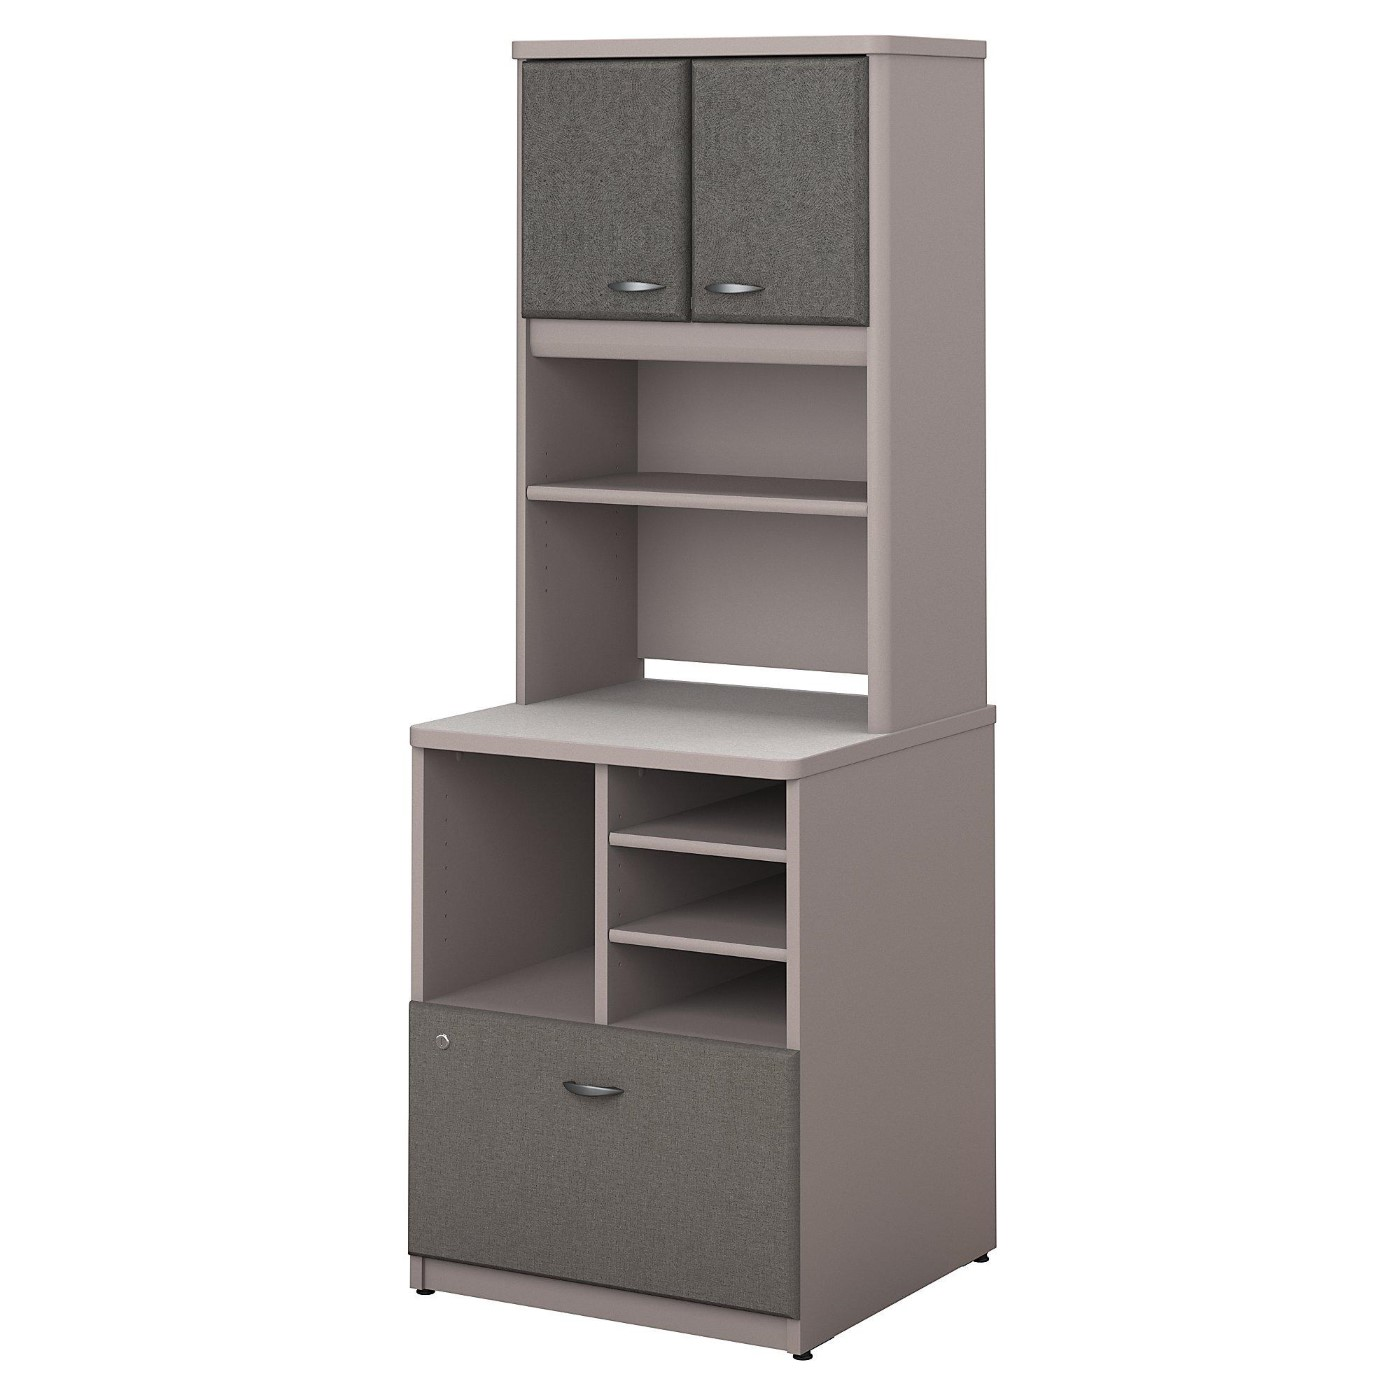 <font color=#c60><b>BUSH BUSINESS FURNITURE SERIES A 24W PILER FILER CABINET WITH HUTCH. FREE SHIPPING</font></b>